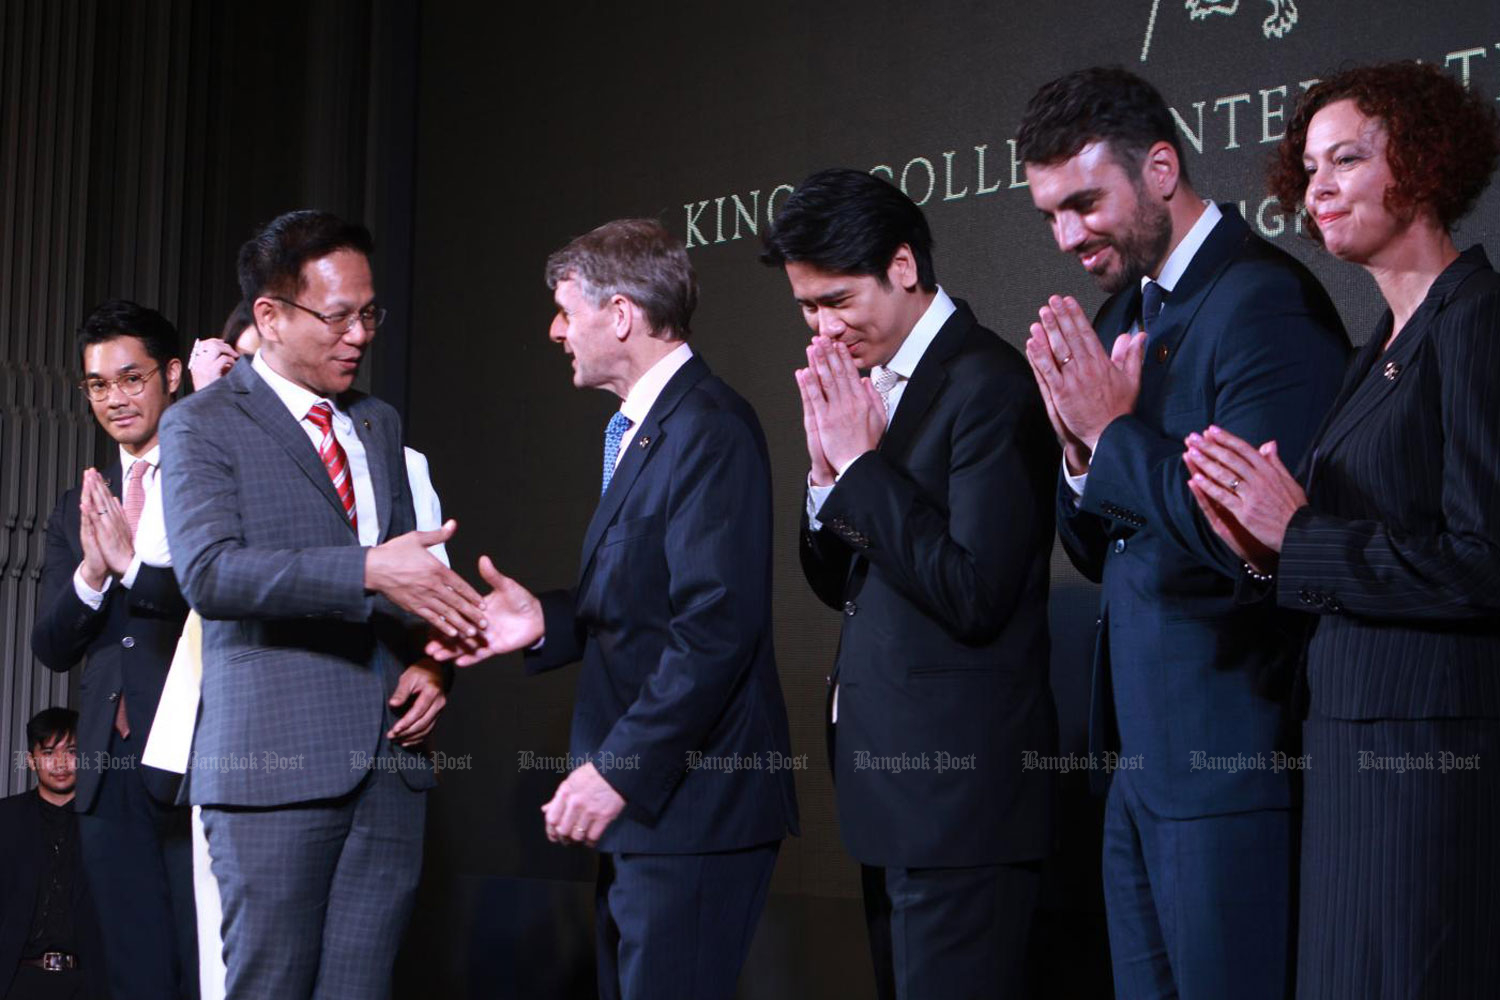 Prof Sakorn Suksriwong, president of Excellence Education Thailand, co-founder of King's Bangkok, shakes hands with Andrew Halls, King's College School Wimbledon headmaster and school executives on Friday.Pawat Laupaisarntaksin